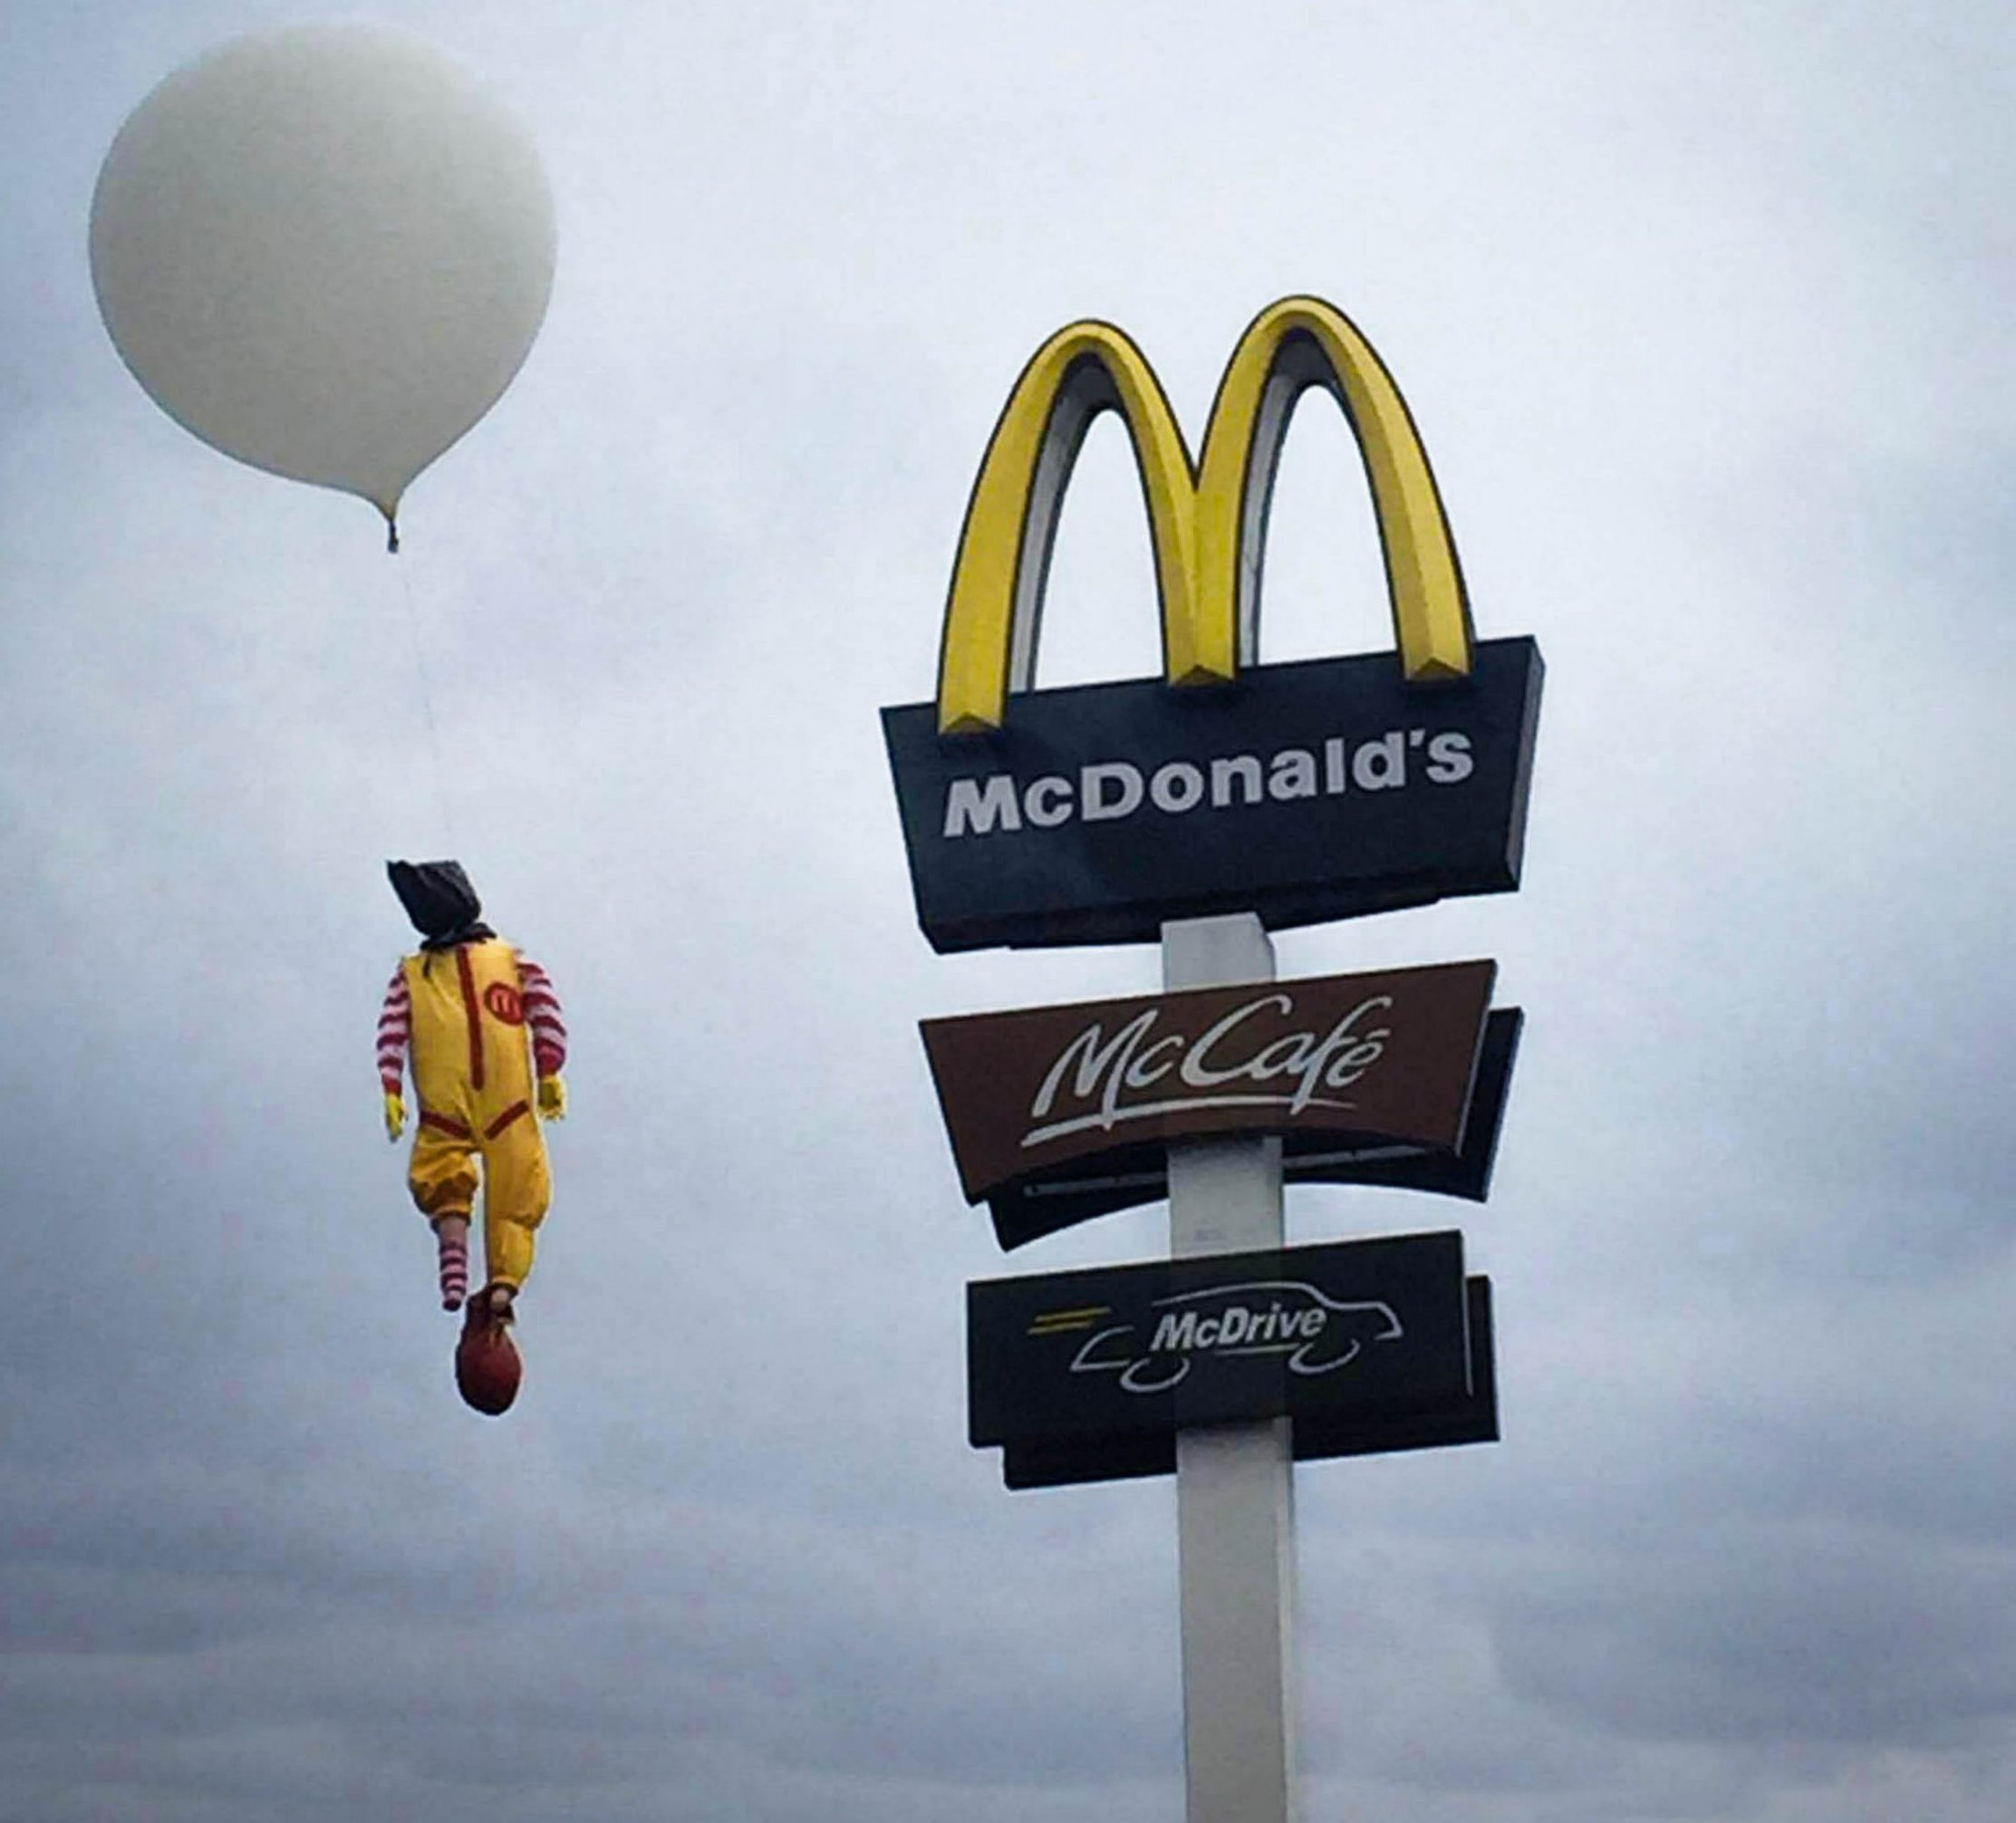 Photographer makes billboards to portray the corporate greed of major brands